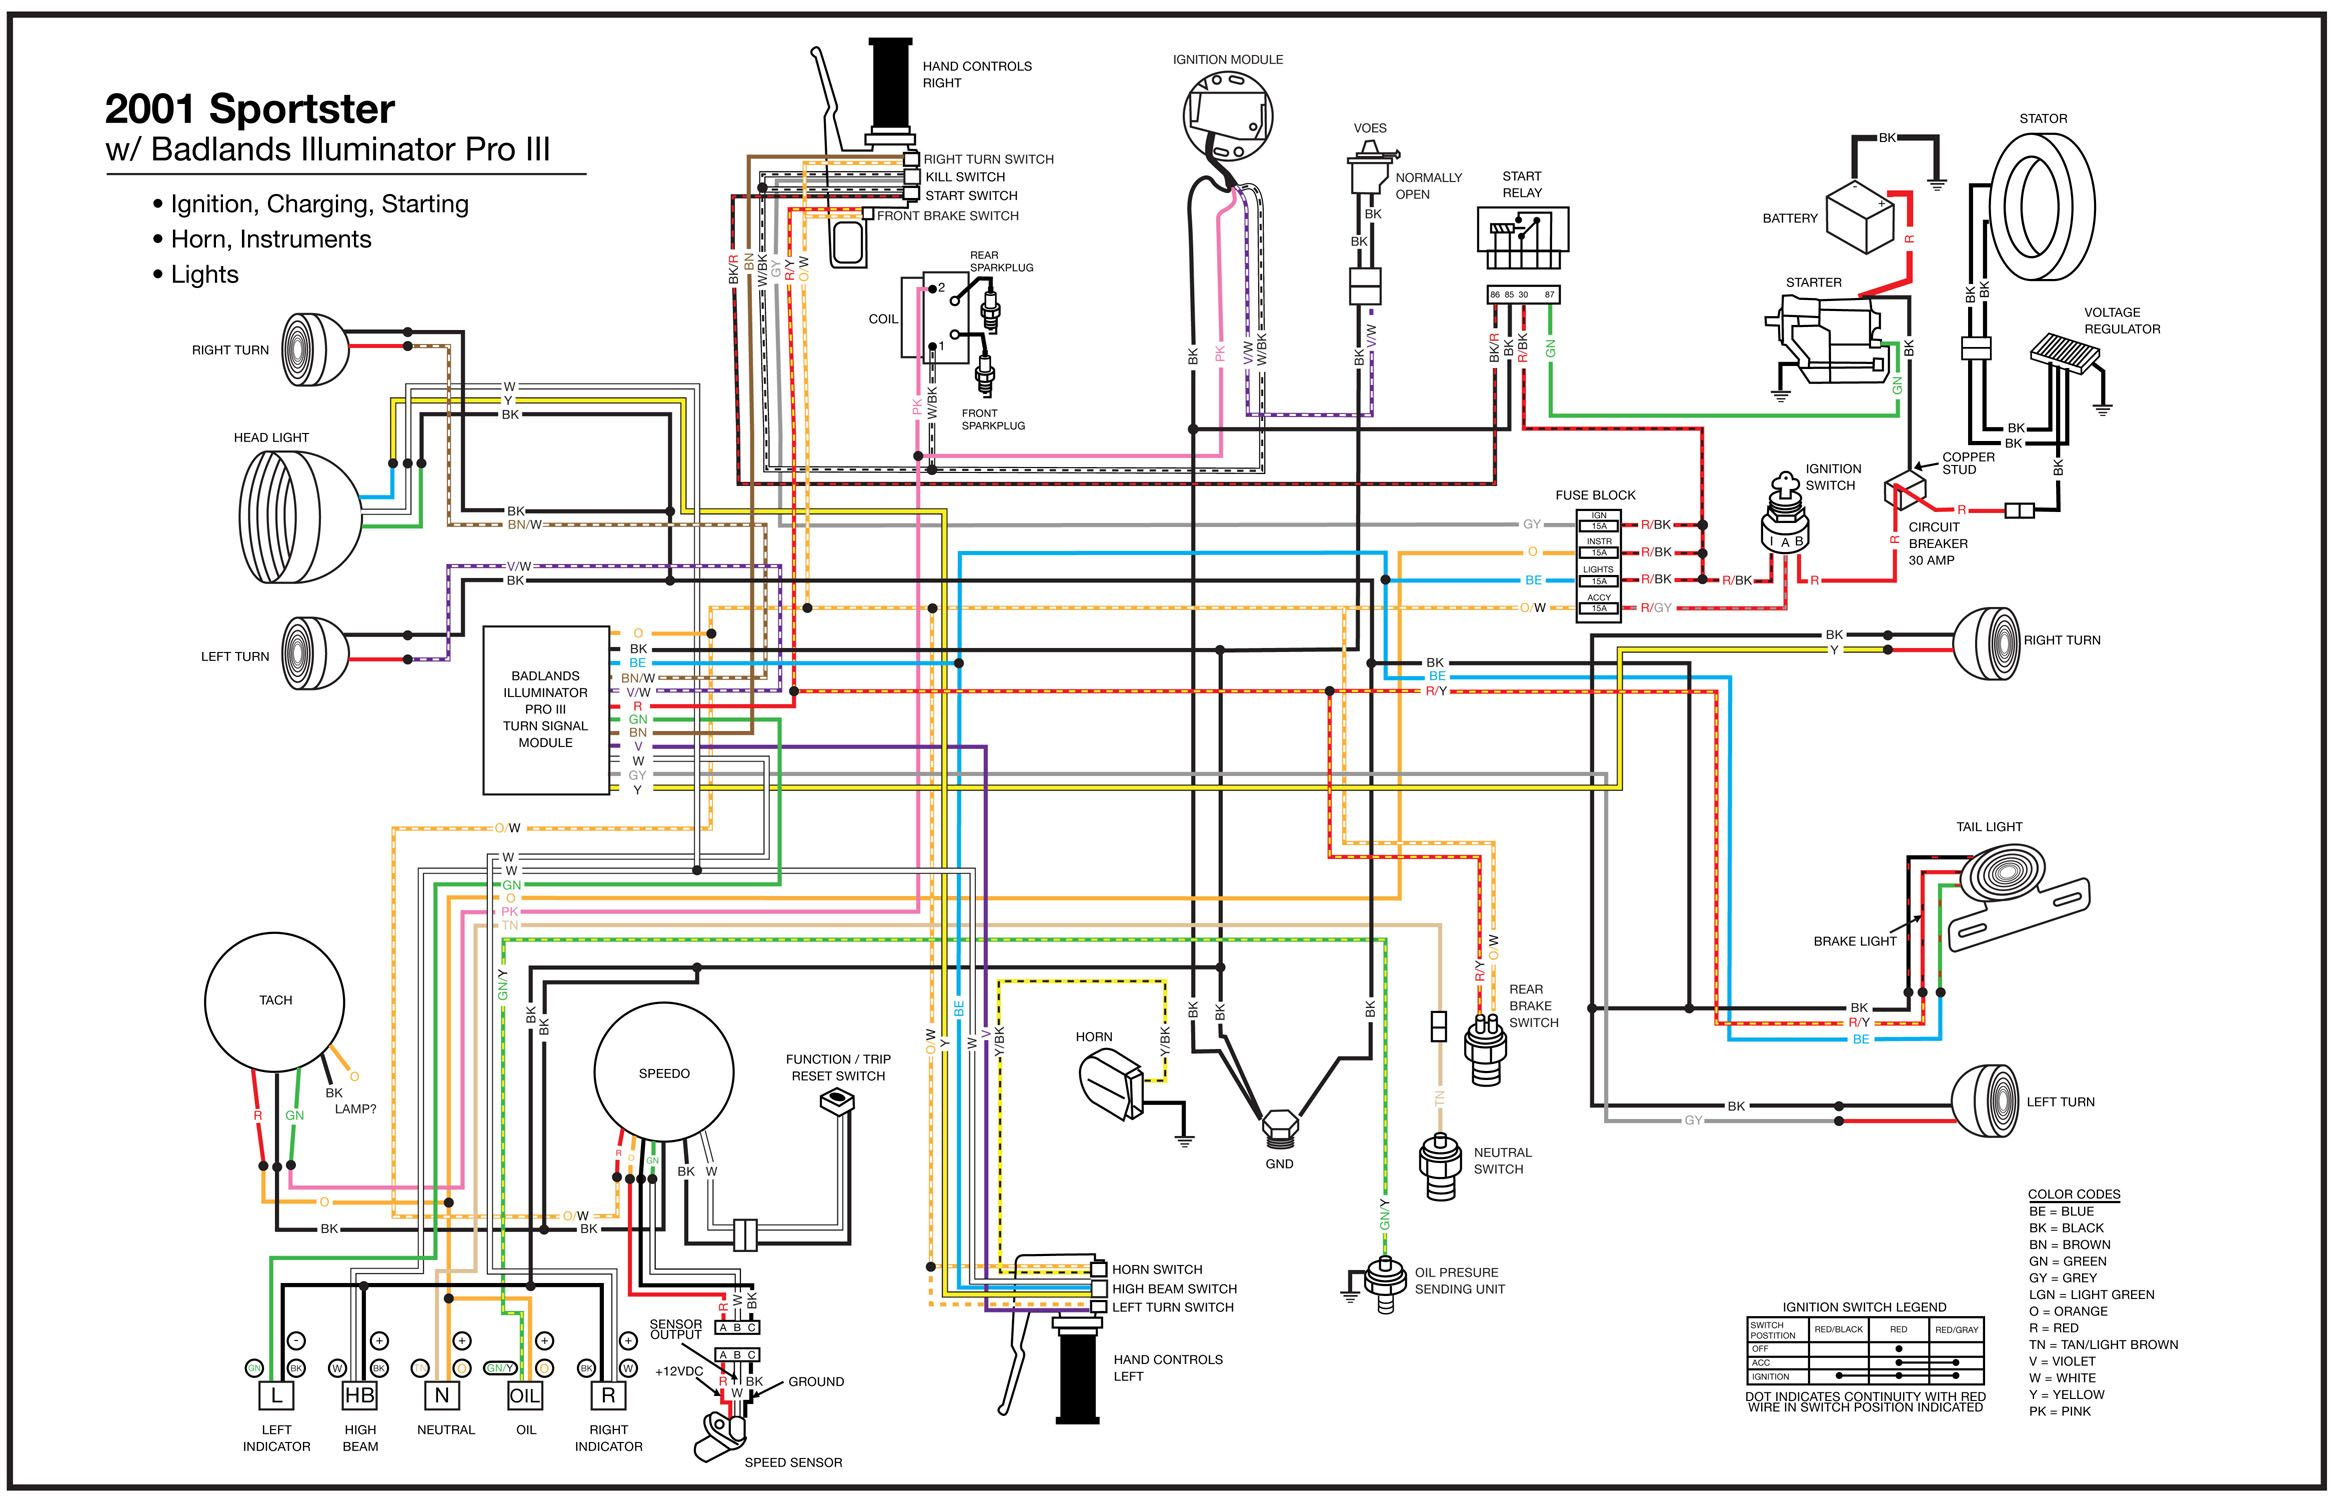 Rigid_EVO Sportster Illuminator Pro 3 Wiring Diagram - The ... on